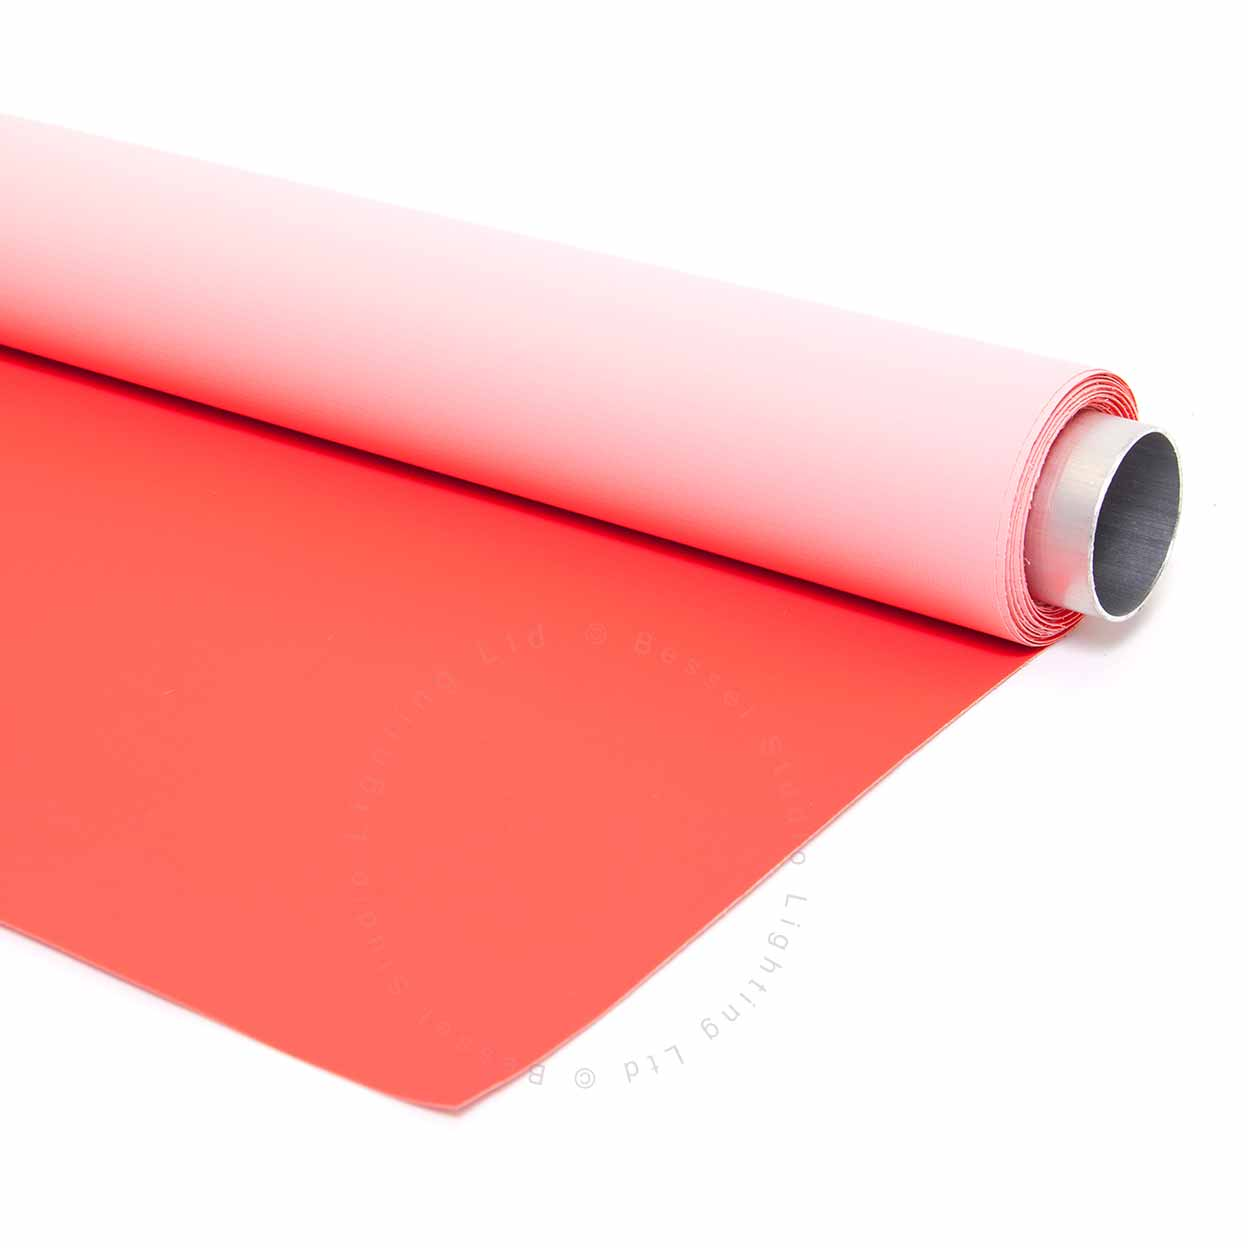 2m x 3m red and pink double sided vinyl background for Cuisine 3m x 2m